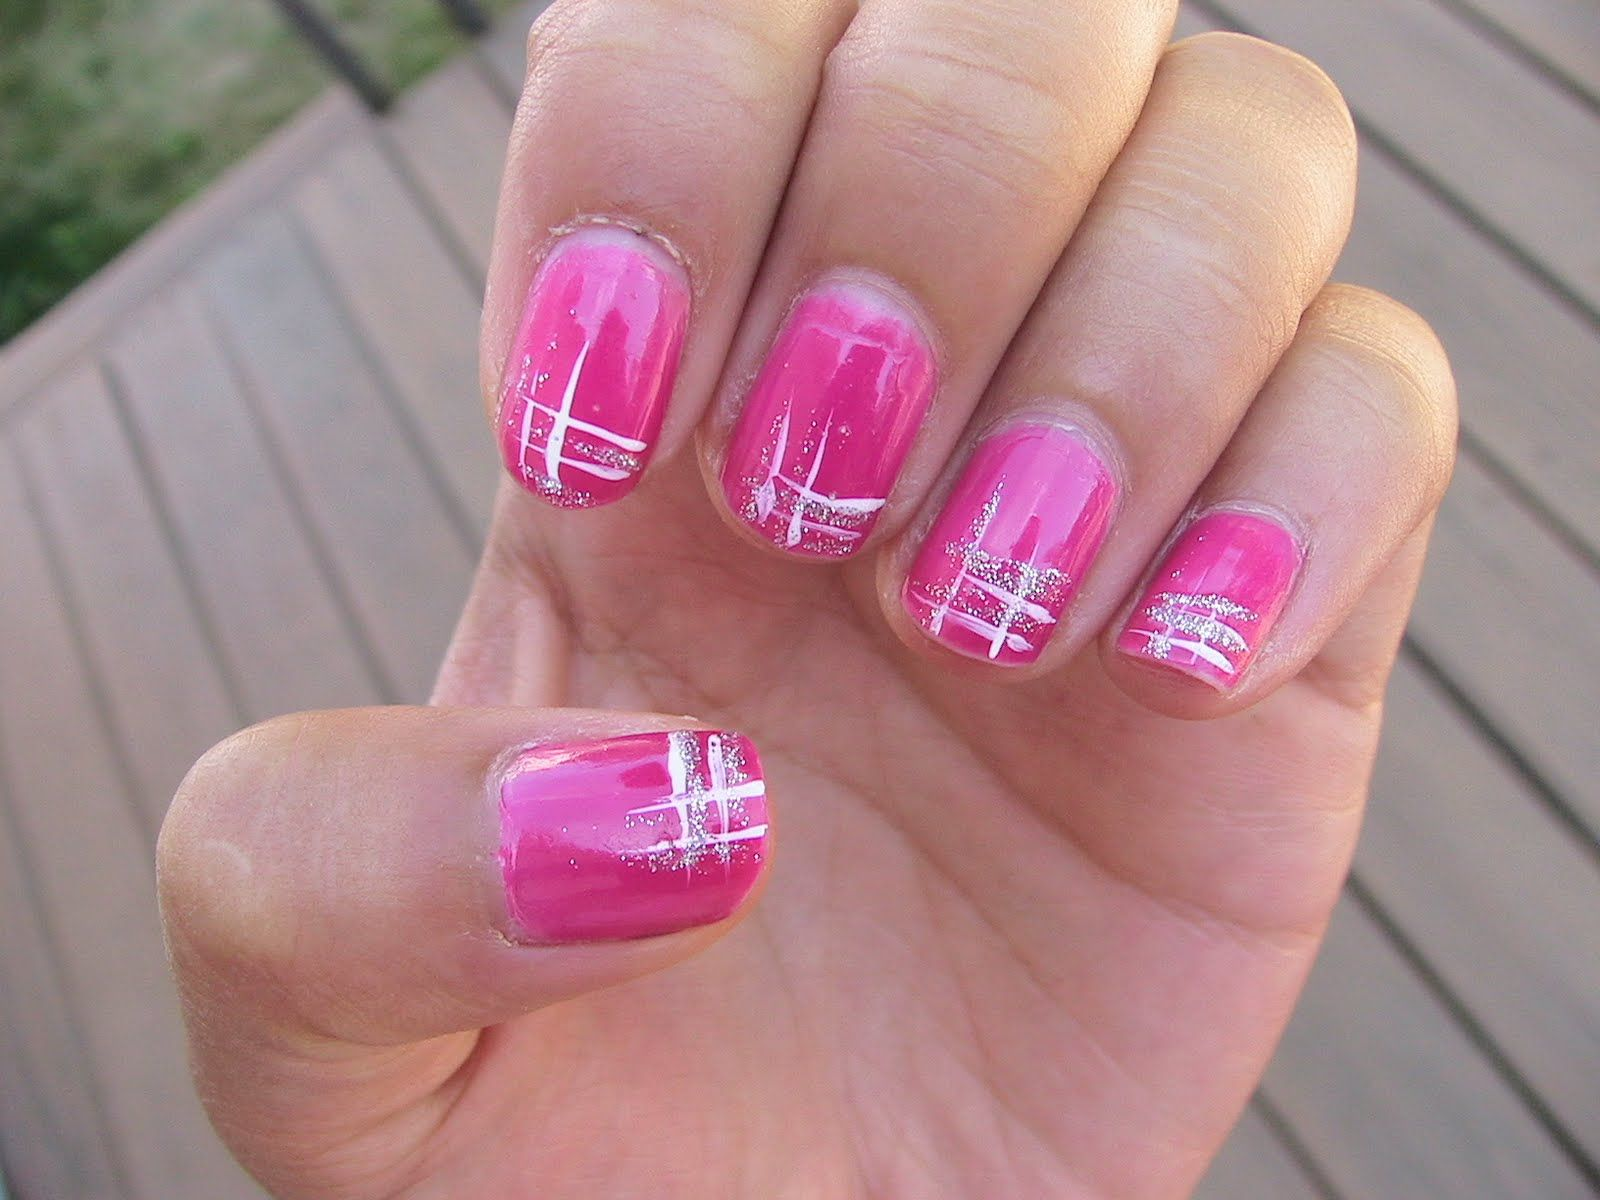 Pink+Acrylic+Nail+Designs | Best Pink Nail Paint Designs | Food ...